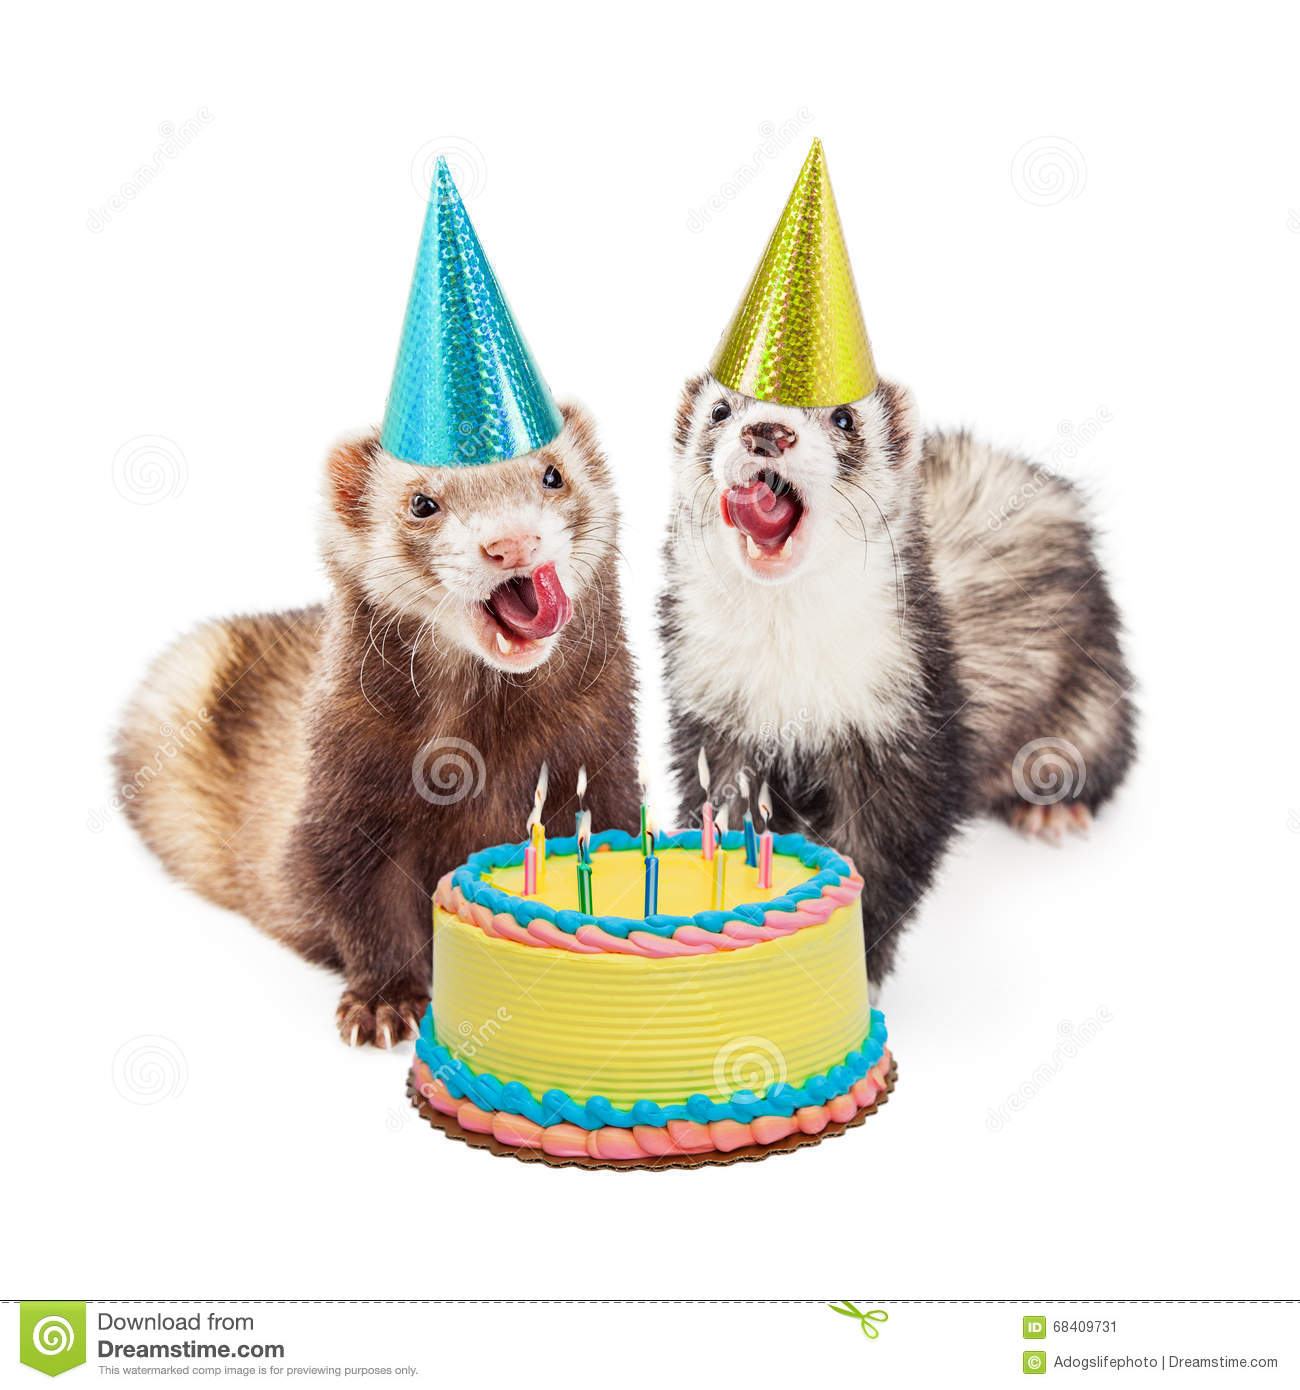 Ferret Birthday Party With Cake Image Image 68409731 – Ferret Birthday Card